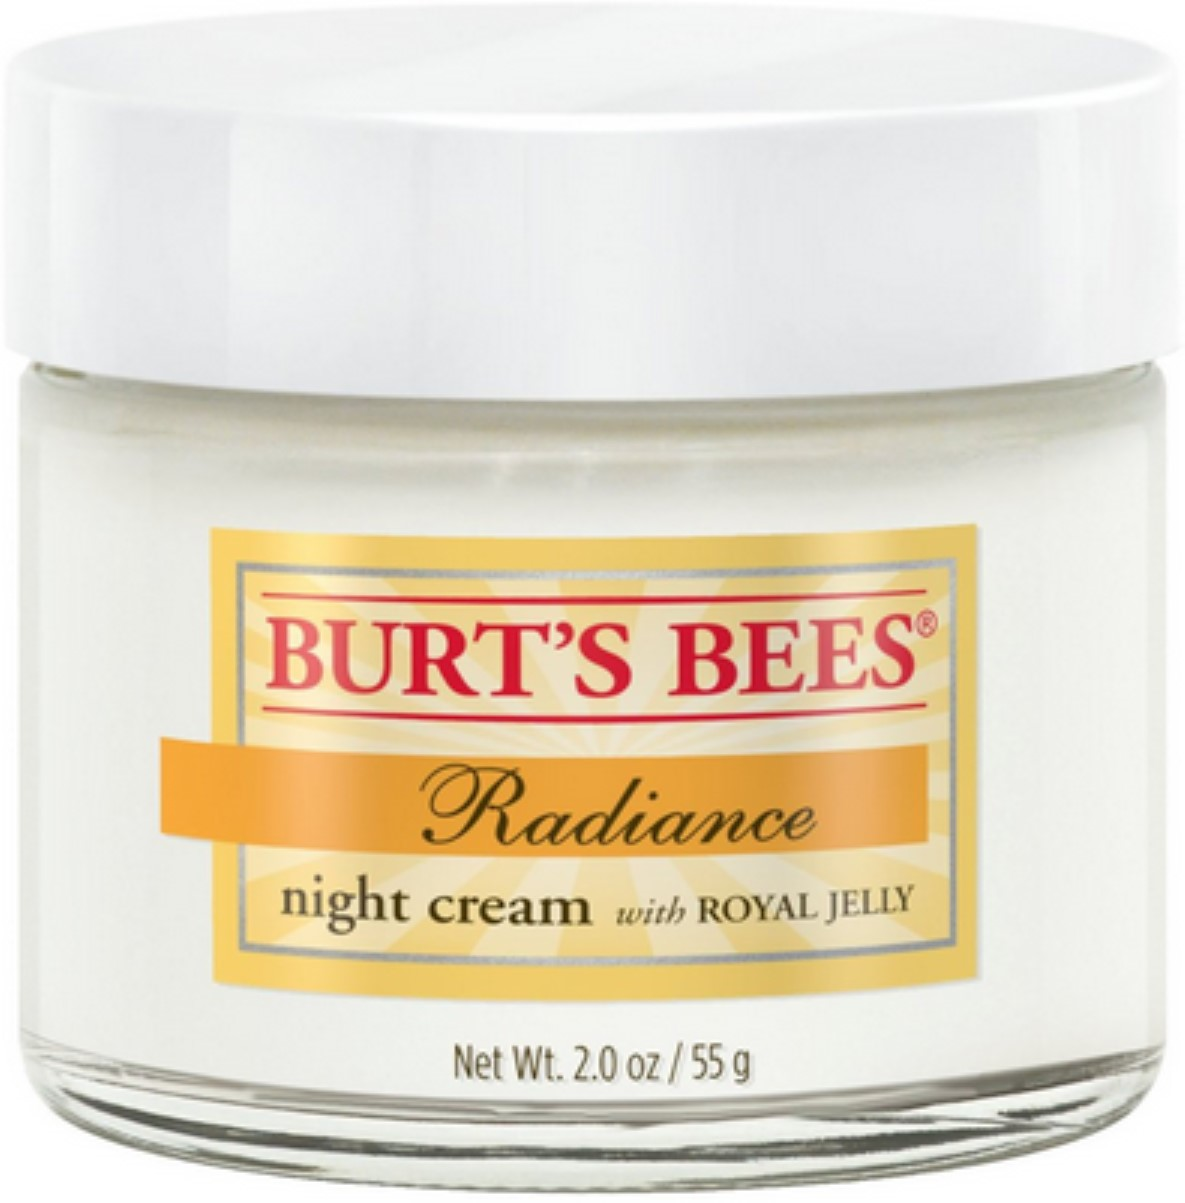 Burt's Bees Radiance Night Creme with Royal Jelly 2 oz